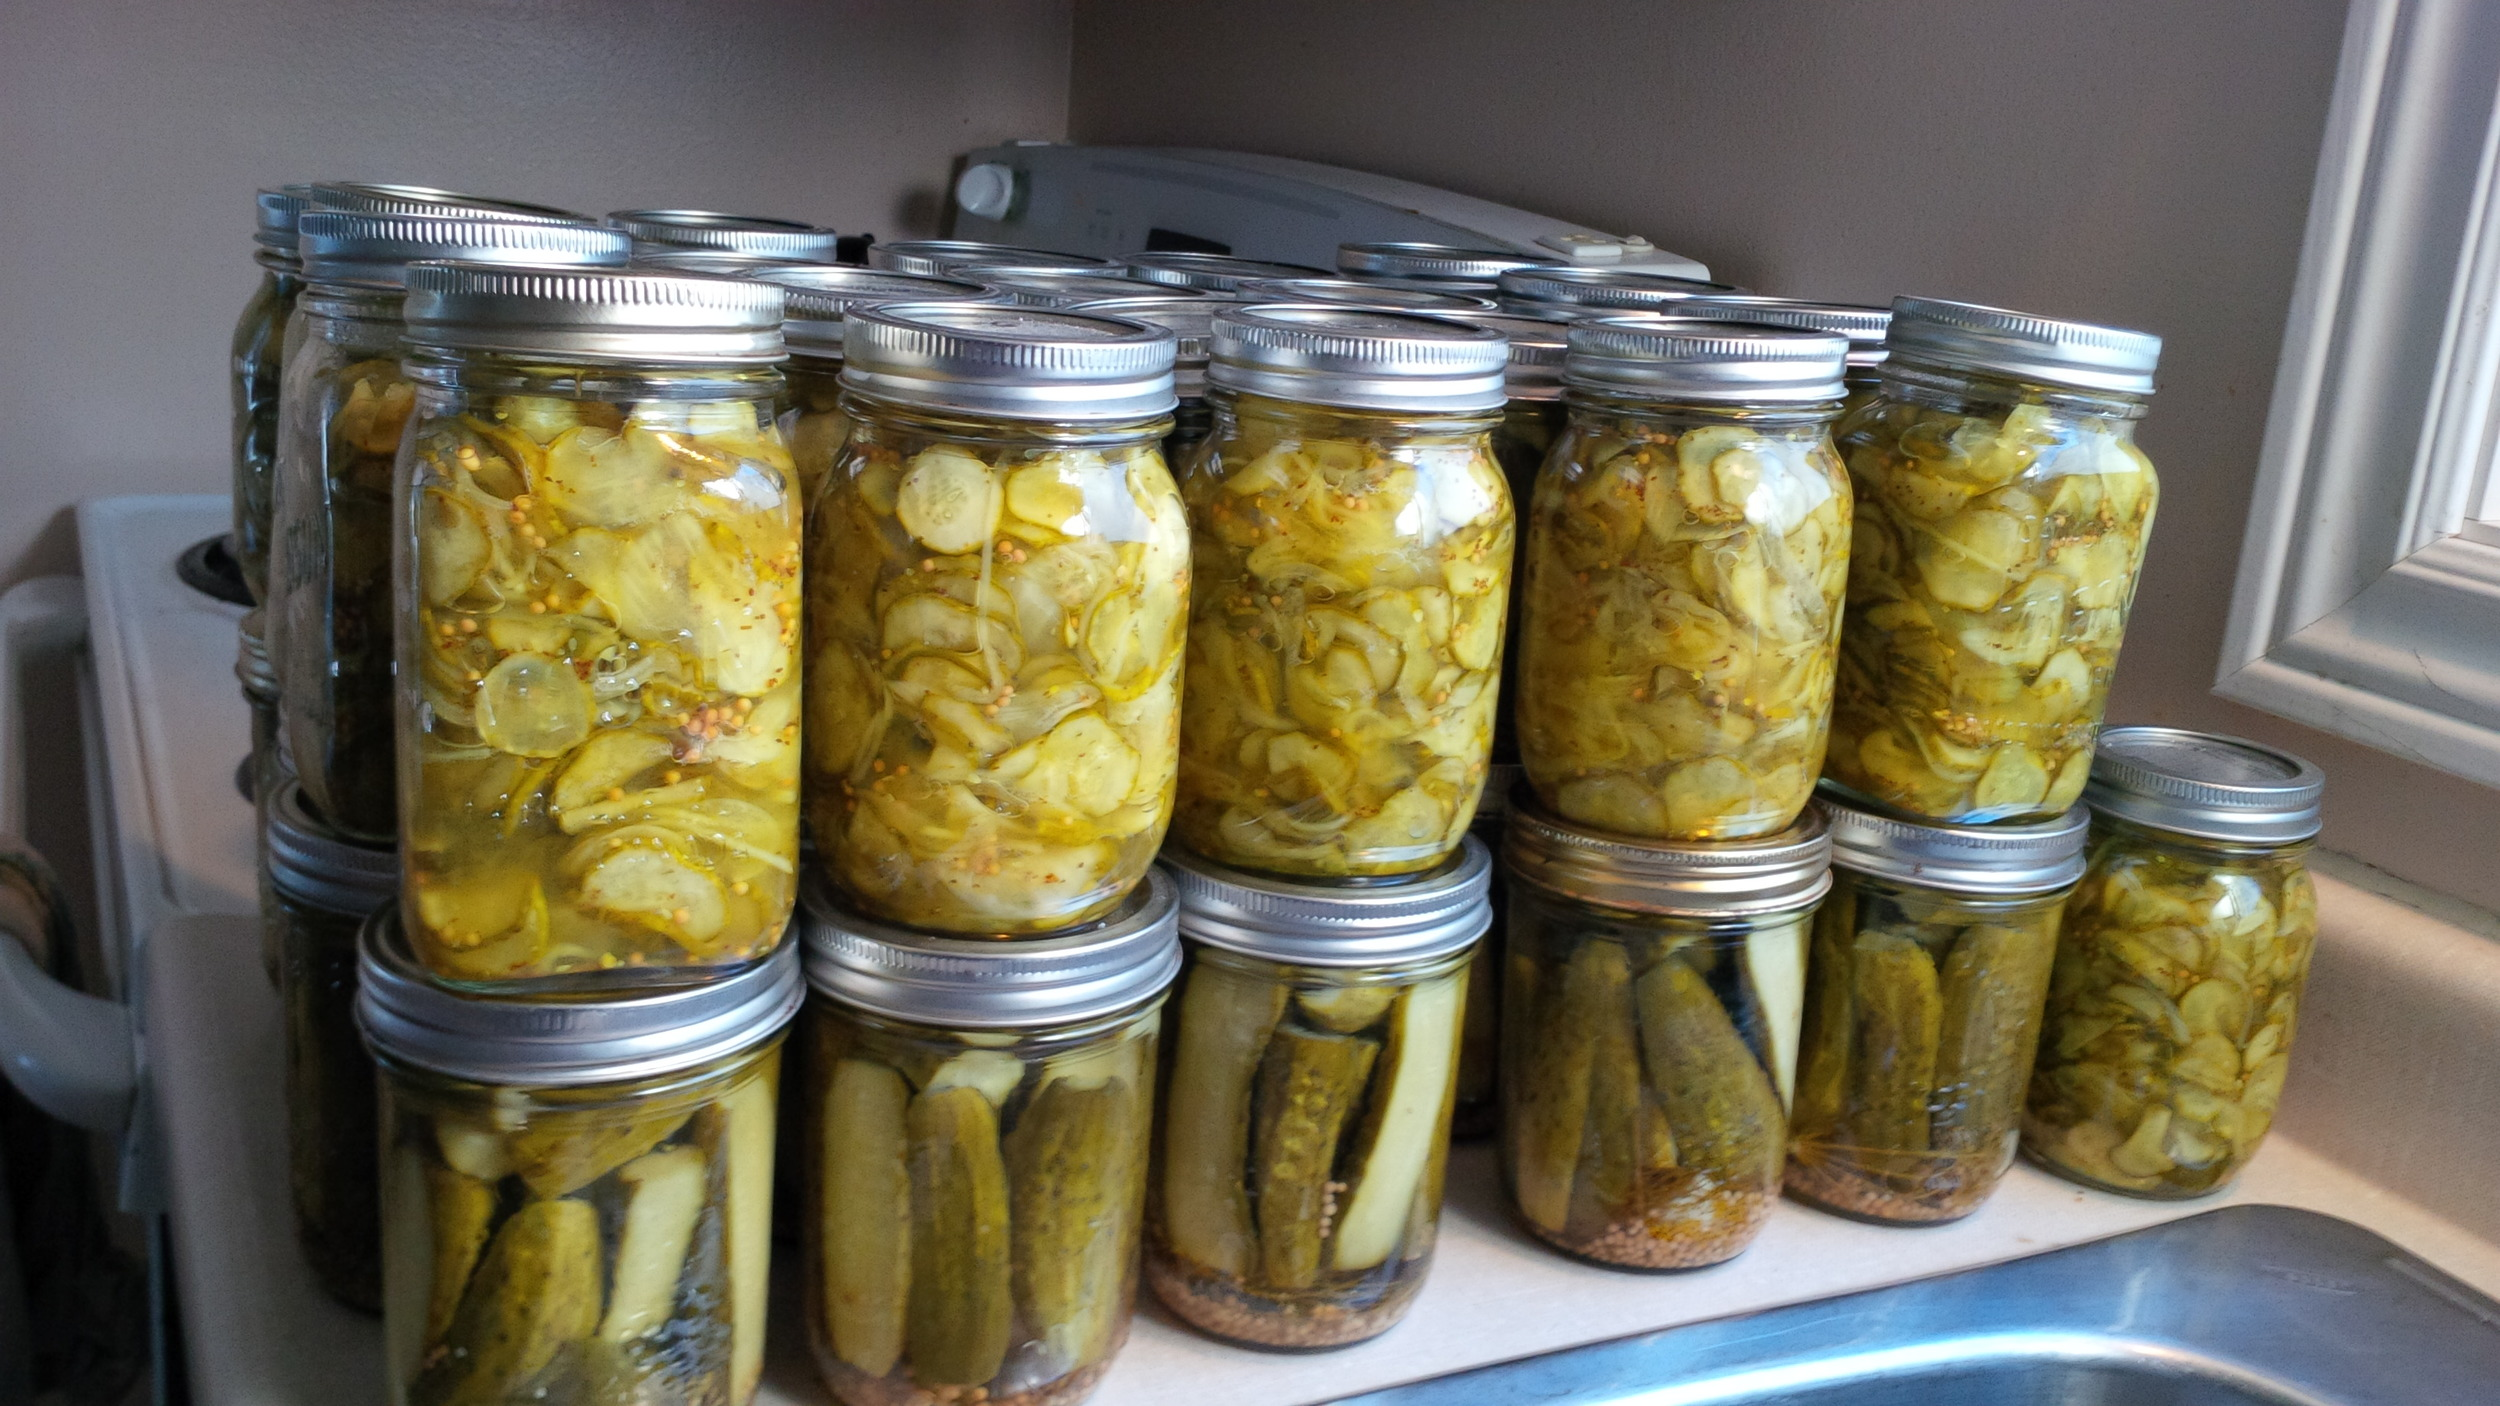 The entire sink (1/2 bushel) of mini cucumbers transforms like magic into 41 gorgeous jars of pickles! The ones are top are  bread and butter .